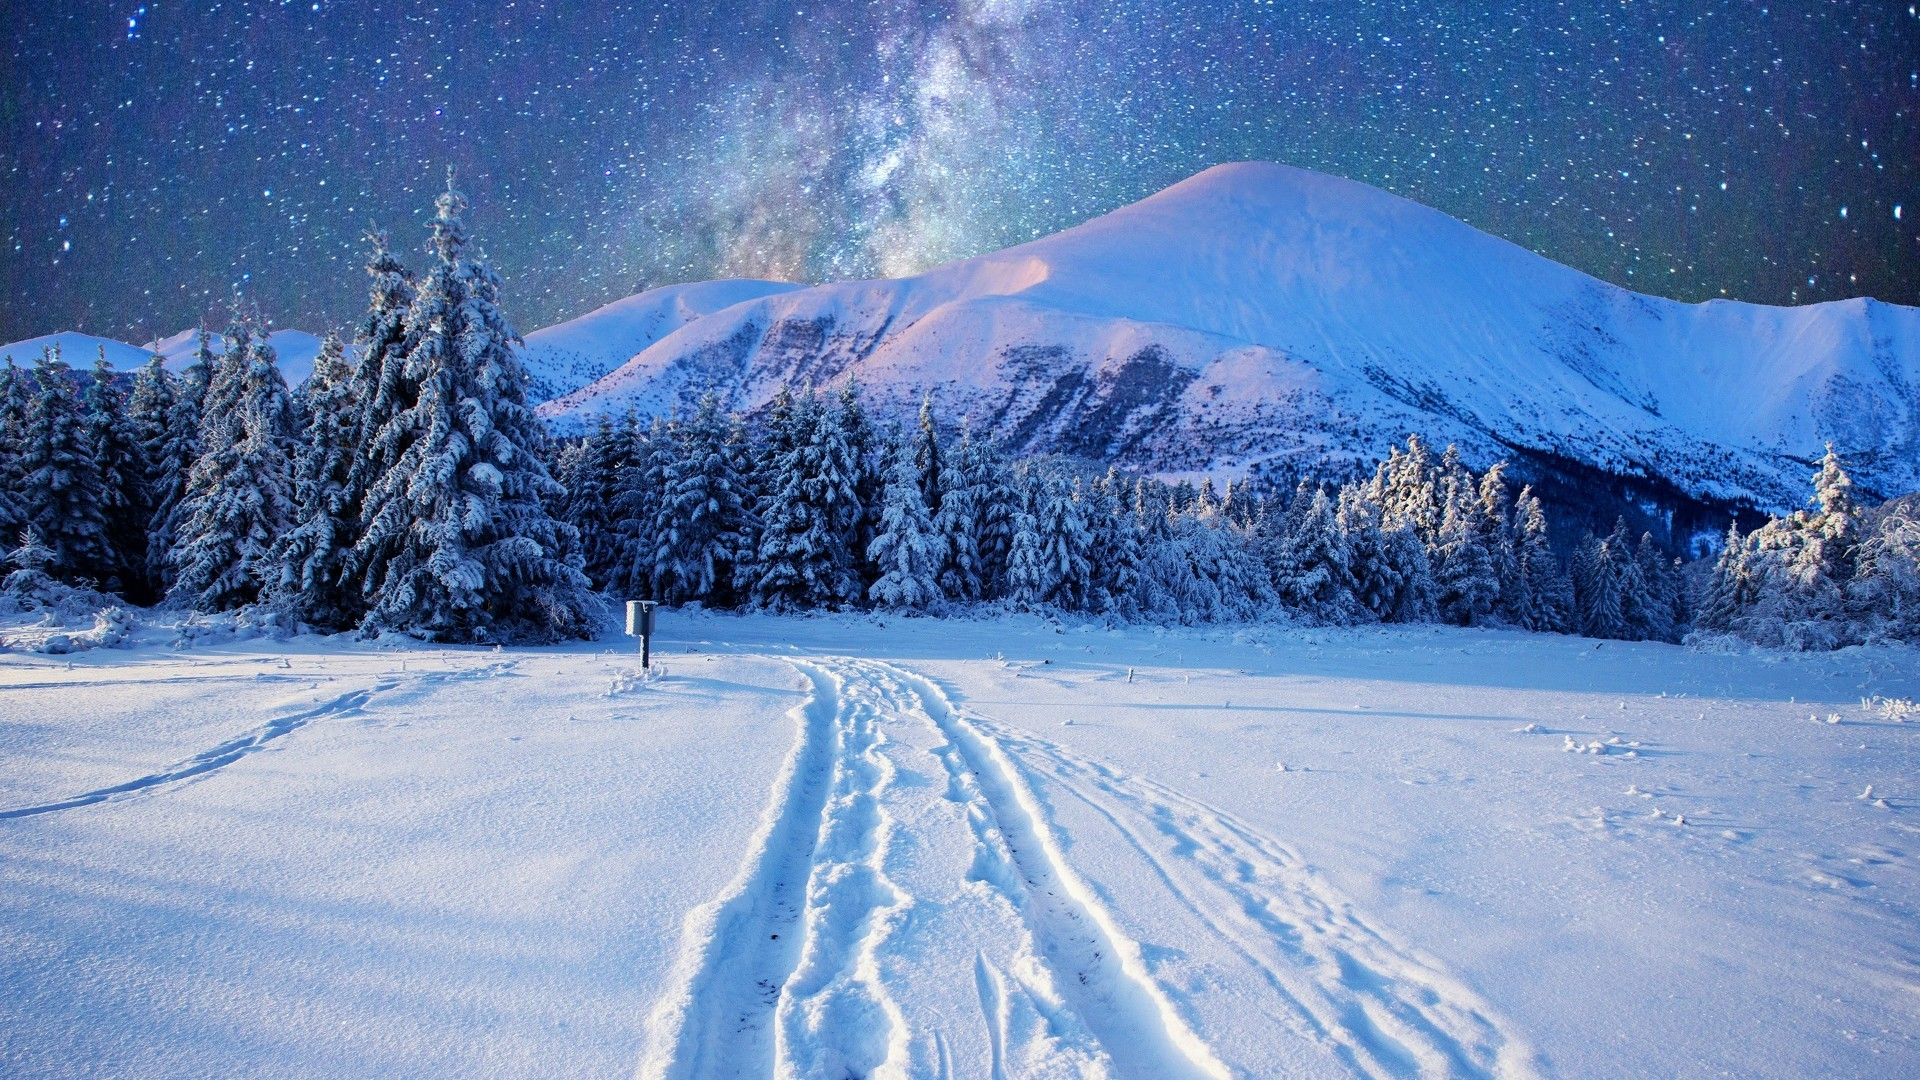 1920x1080, Milky Way On The Night Sky Over The Snowy - Winter Wallpaper Iphone - HD Wallpaper